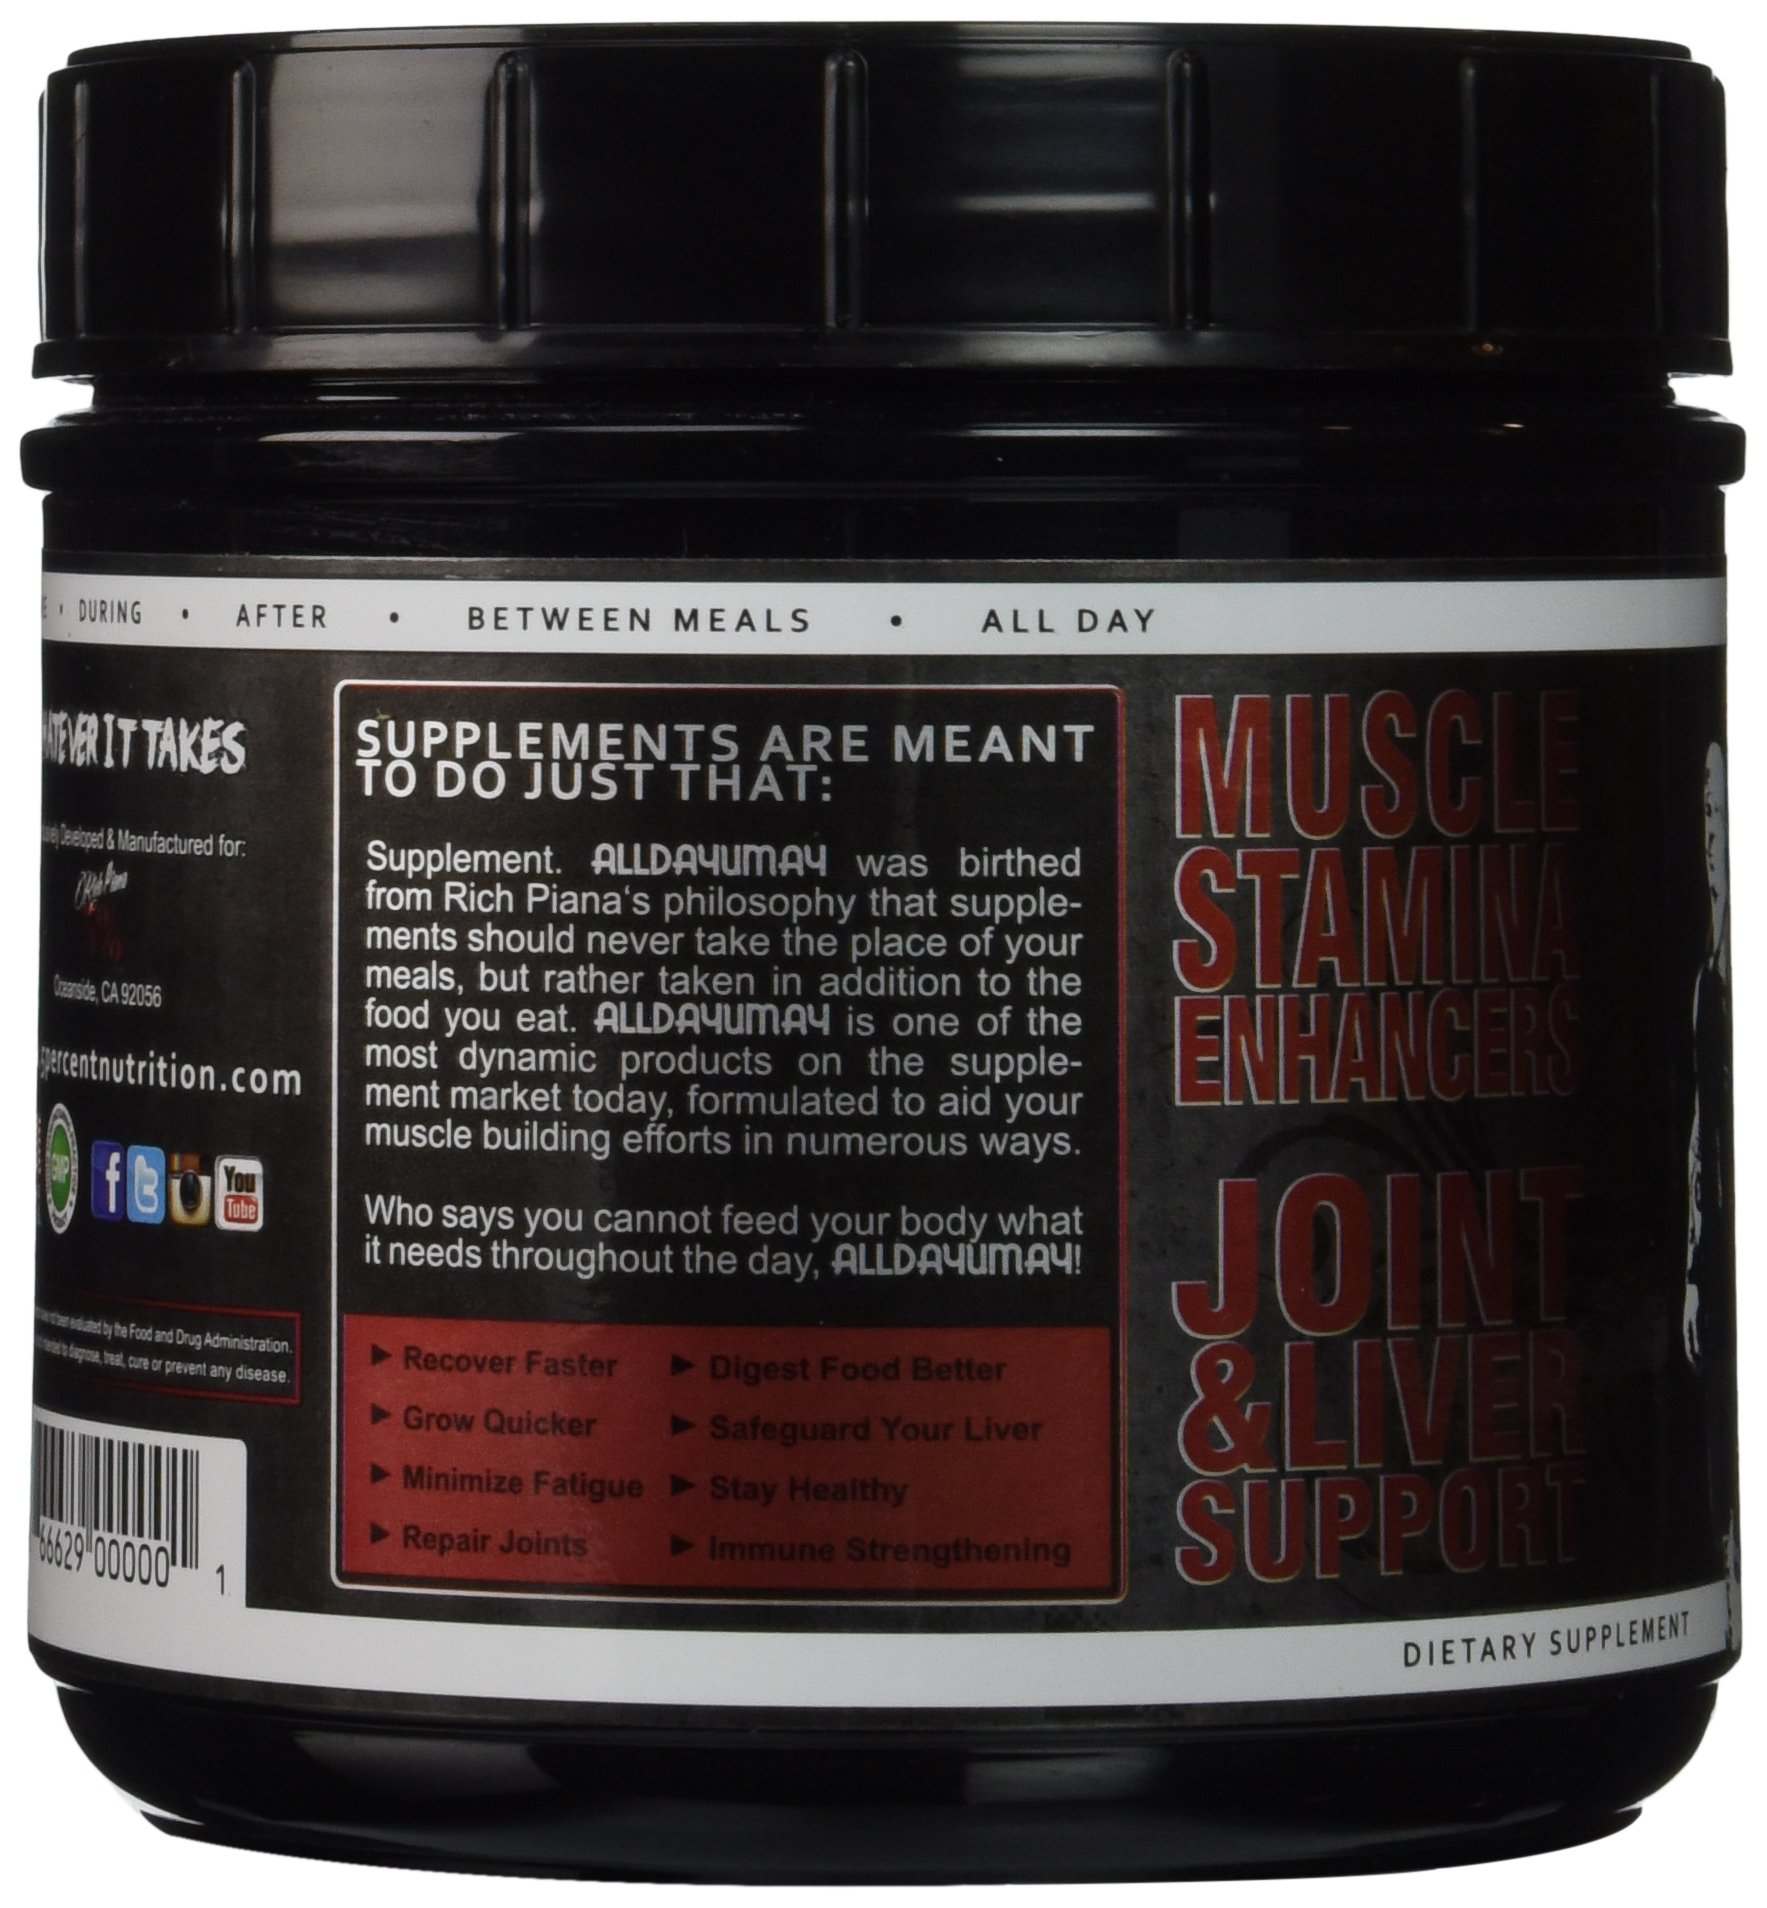 8104Y0vki4L - 5% Nutrition - Rich Piana All Day You May, Fruit Punch, PER1001/462/101